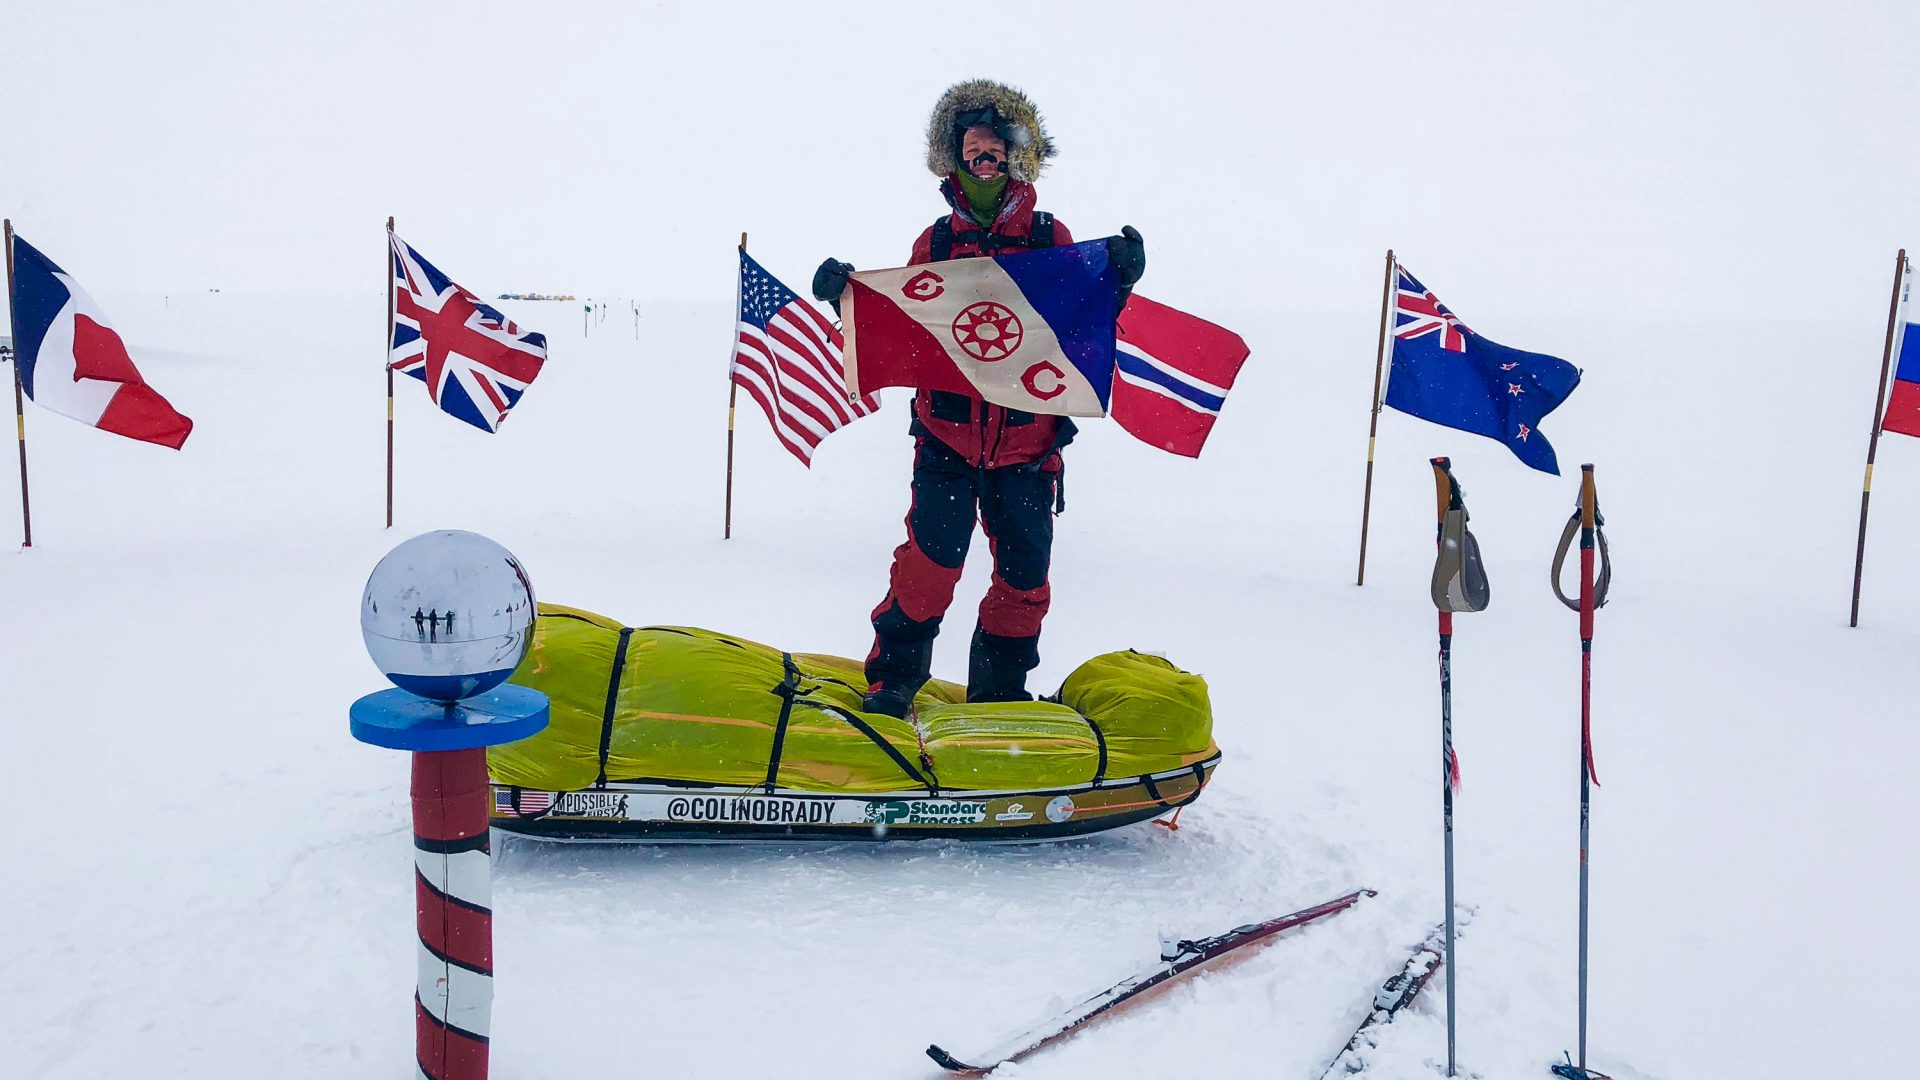 Colin O'Brady surrounded by flags from other countries which have also been through Antarctica.